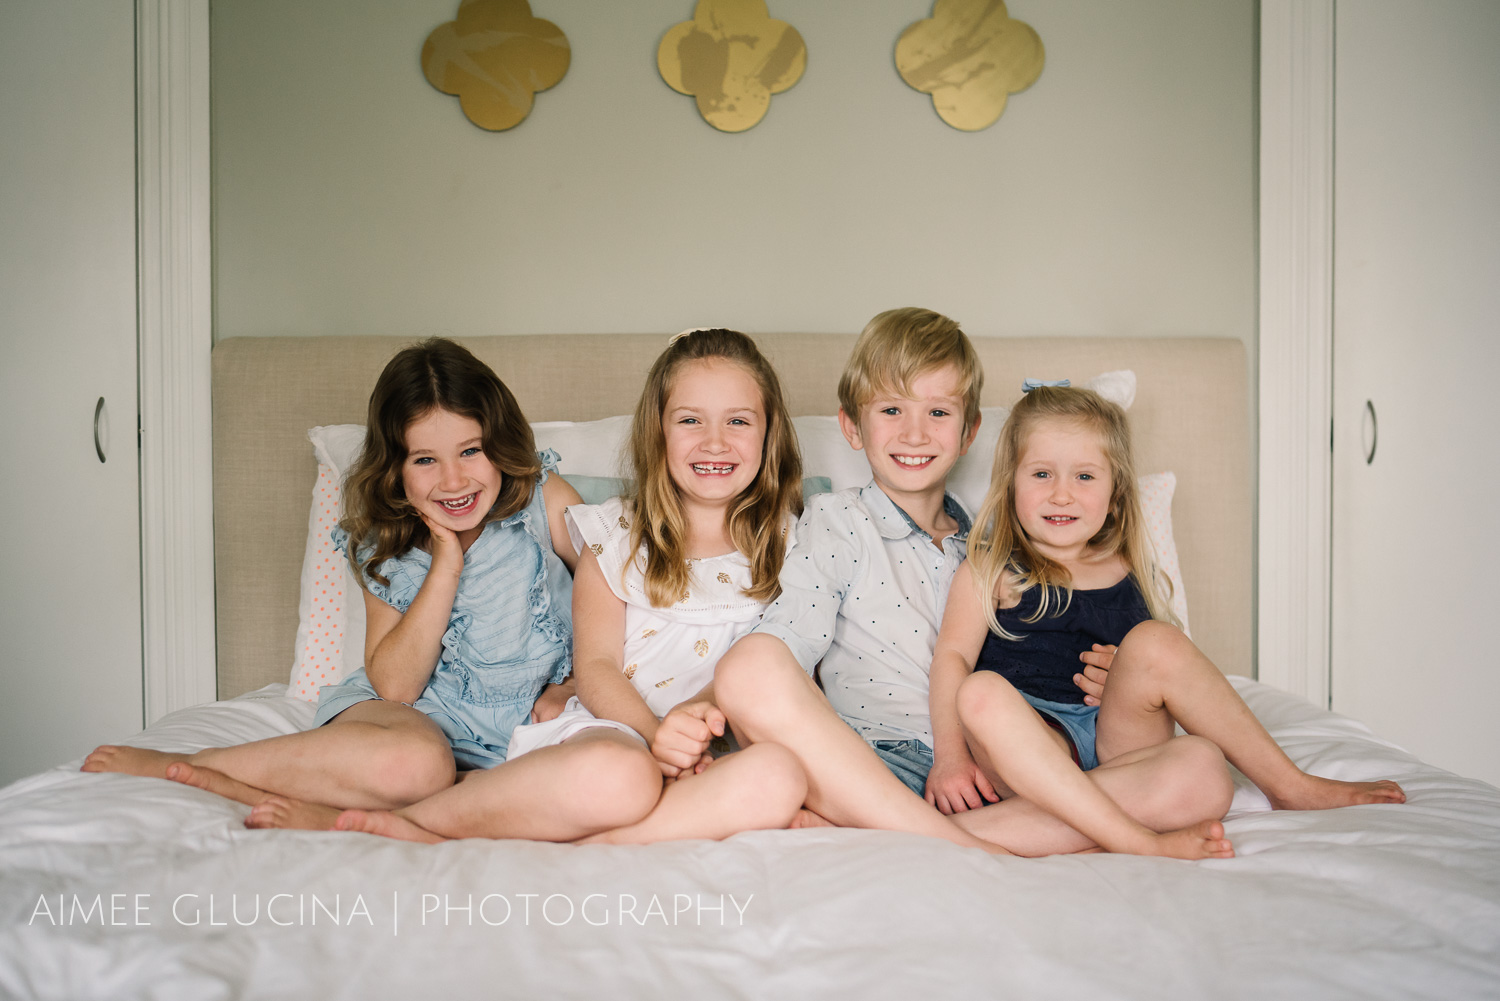 Baudinet Family Session by Aimee Glucina Photography-3.jpg